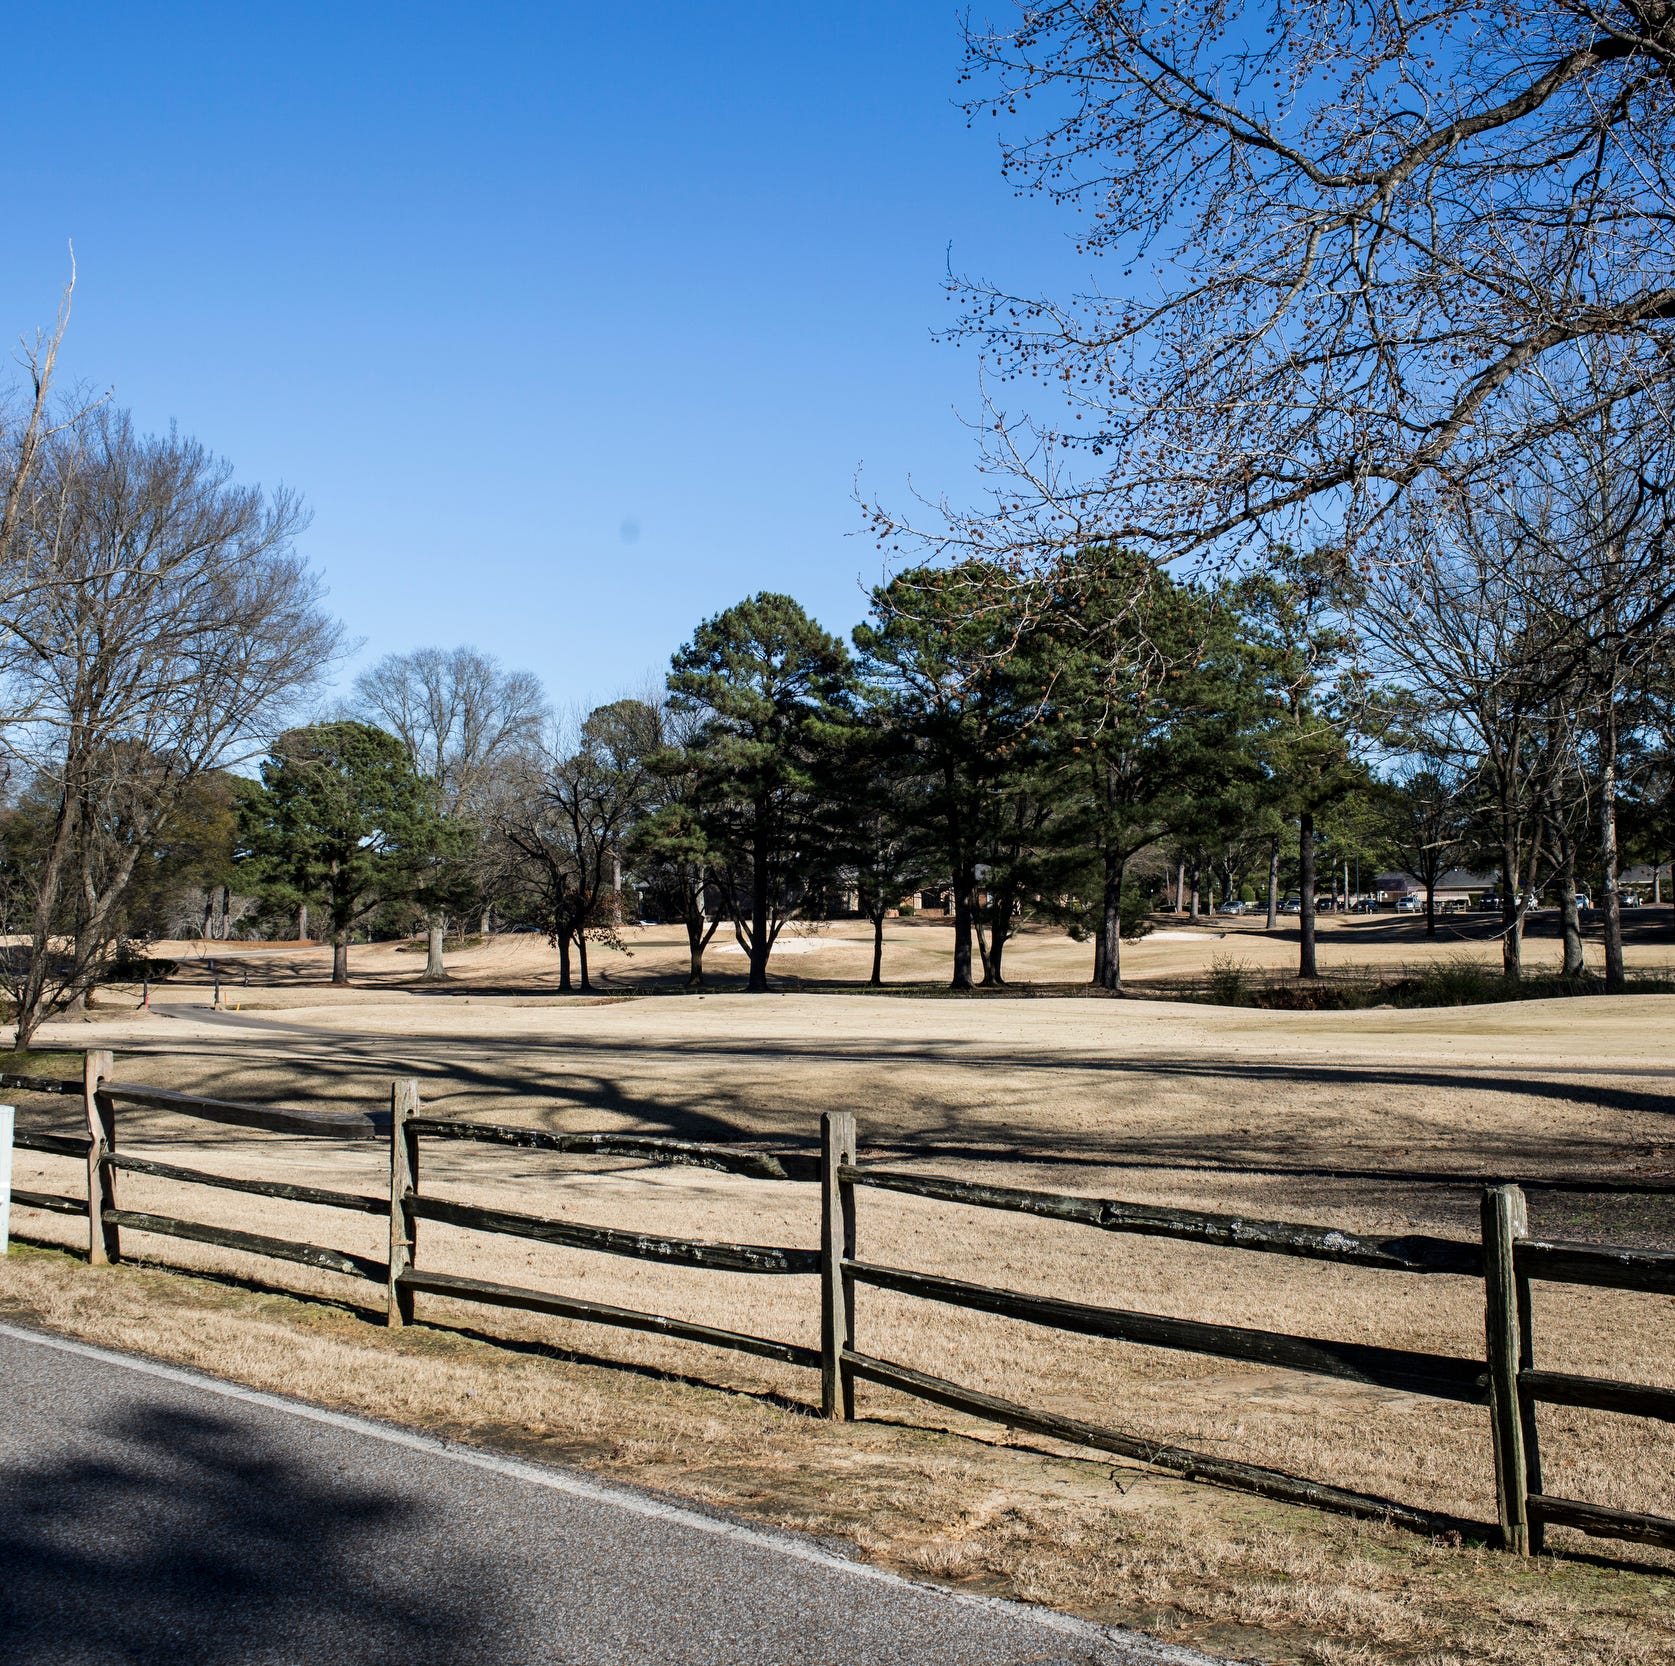 Germantown will bid on the Germantown Country Club property. Here's what happens next